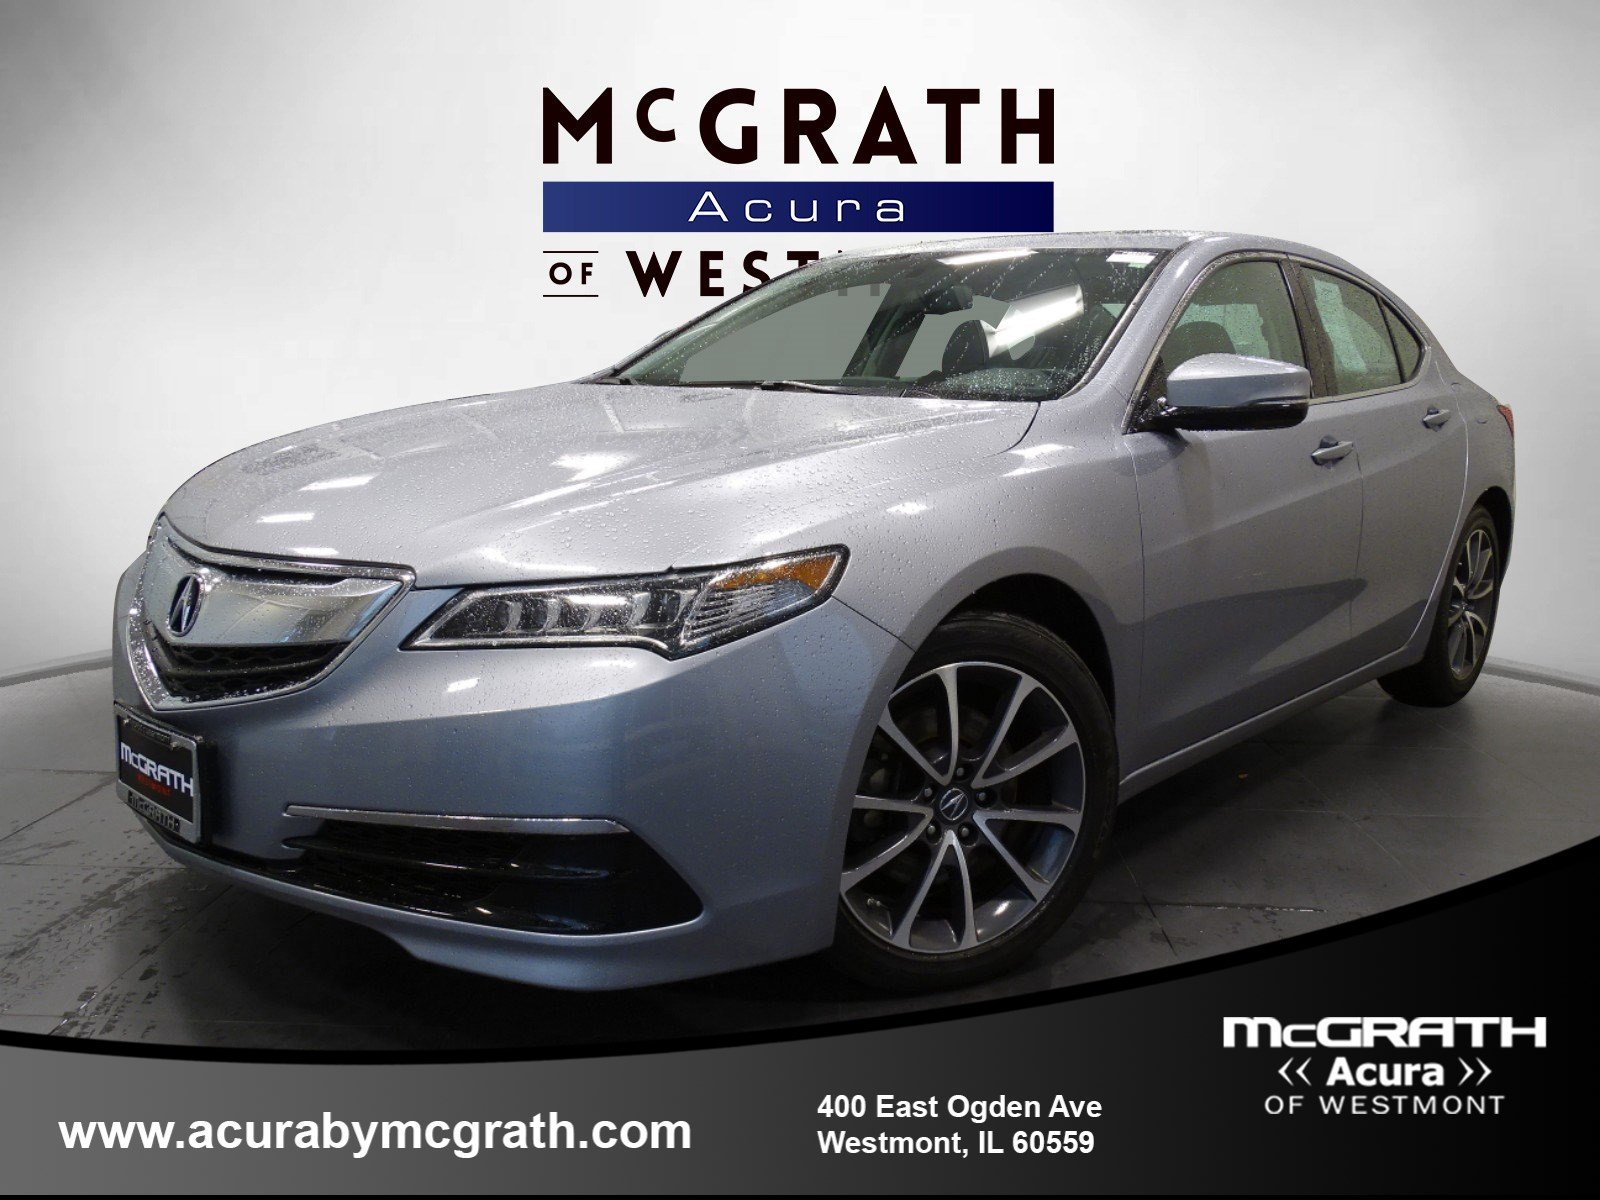 2015 Acura TLX V6 FWD 4dr Car Chicagoland Acura Dealers Association